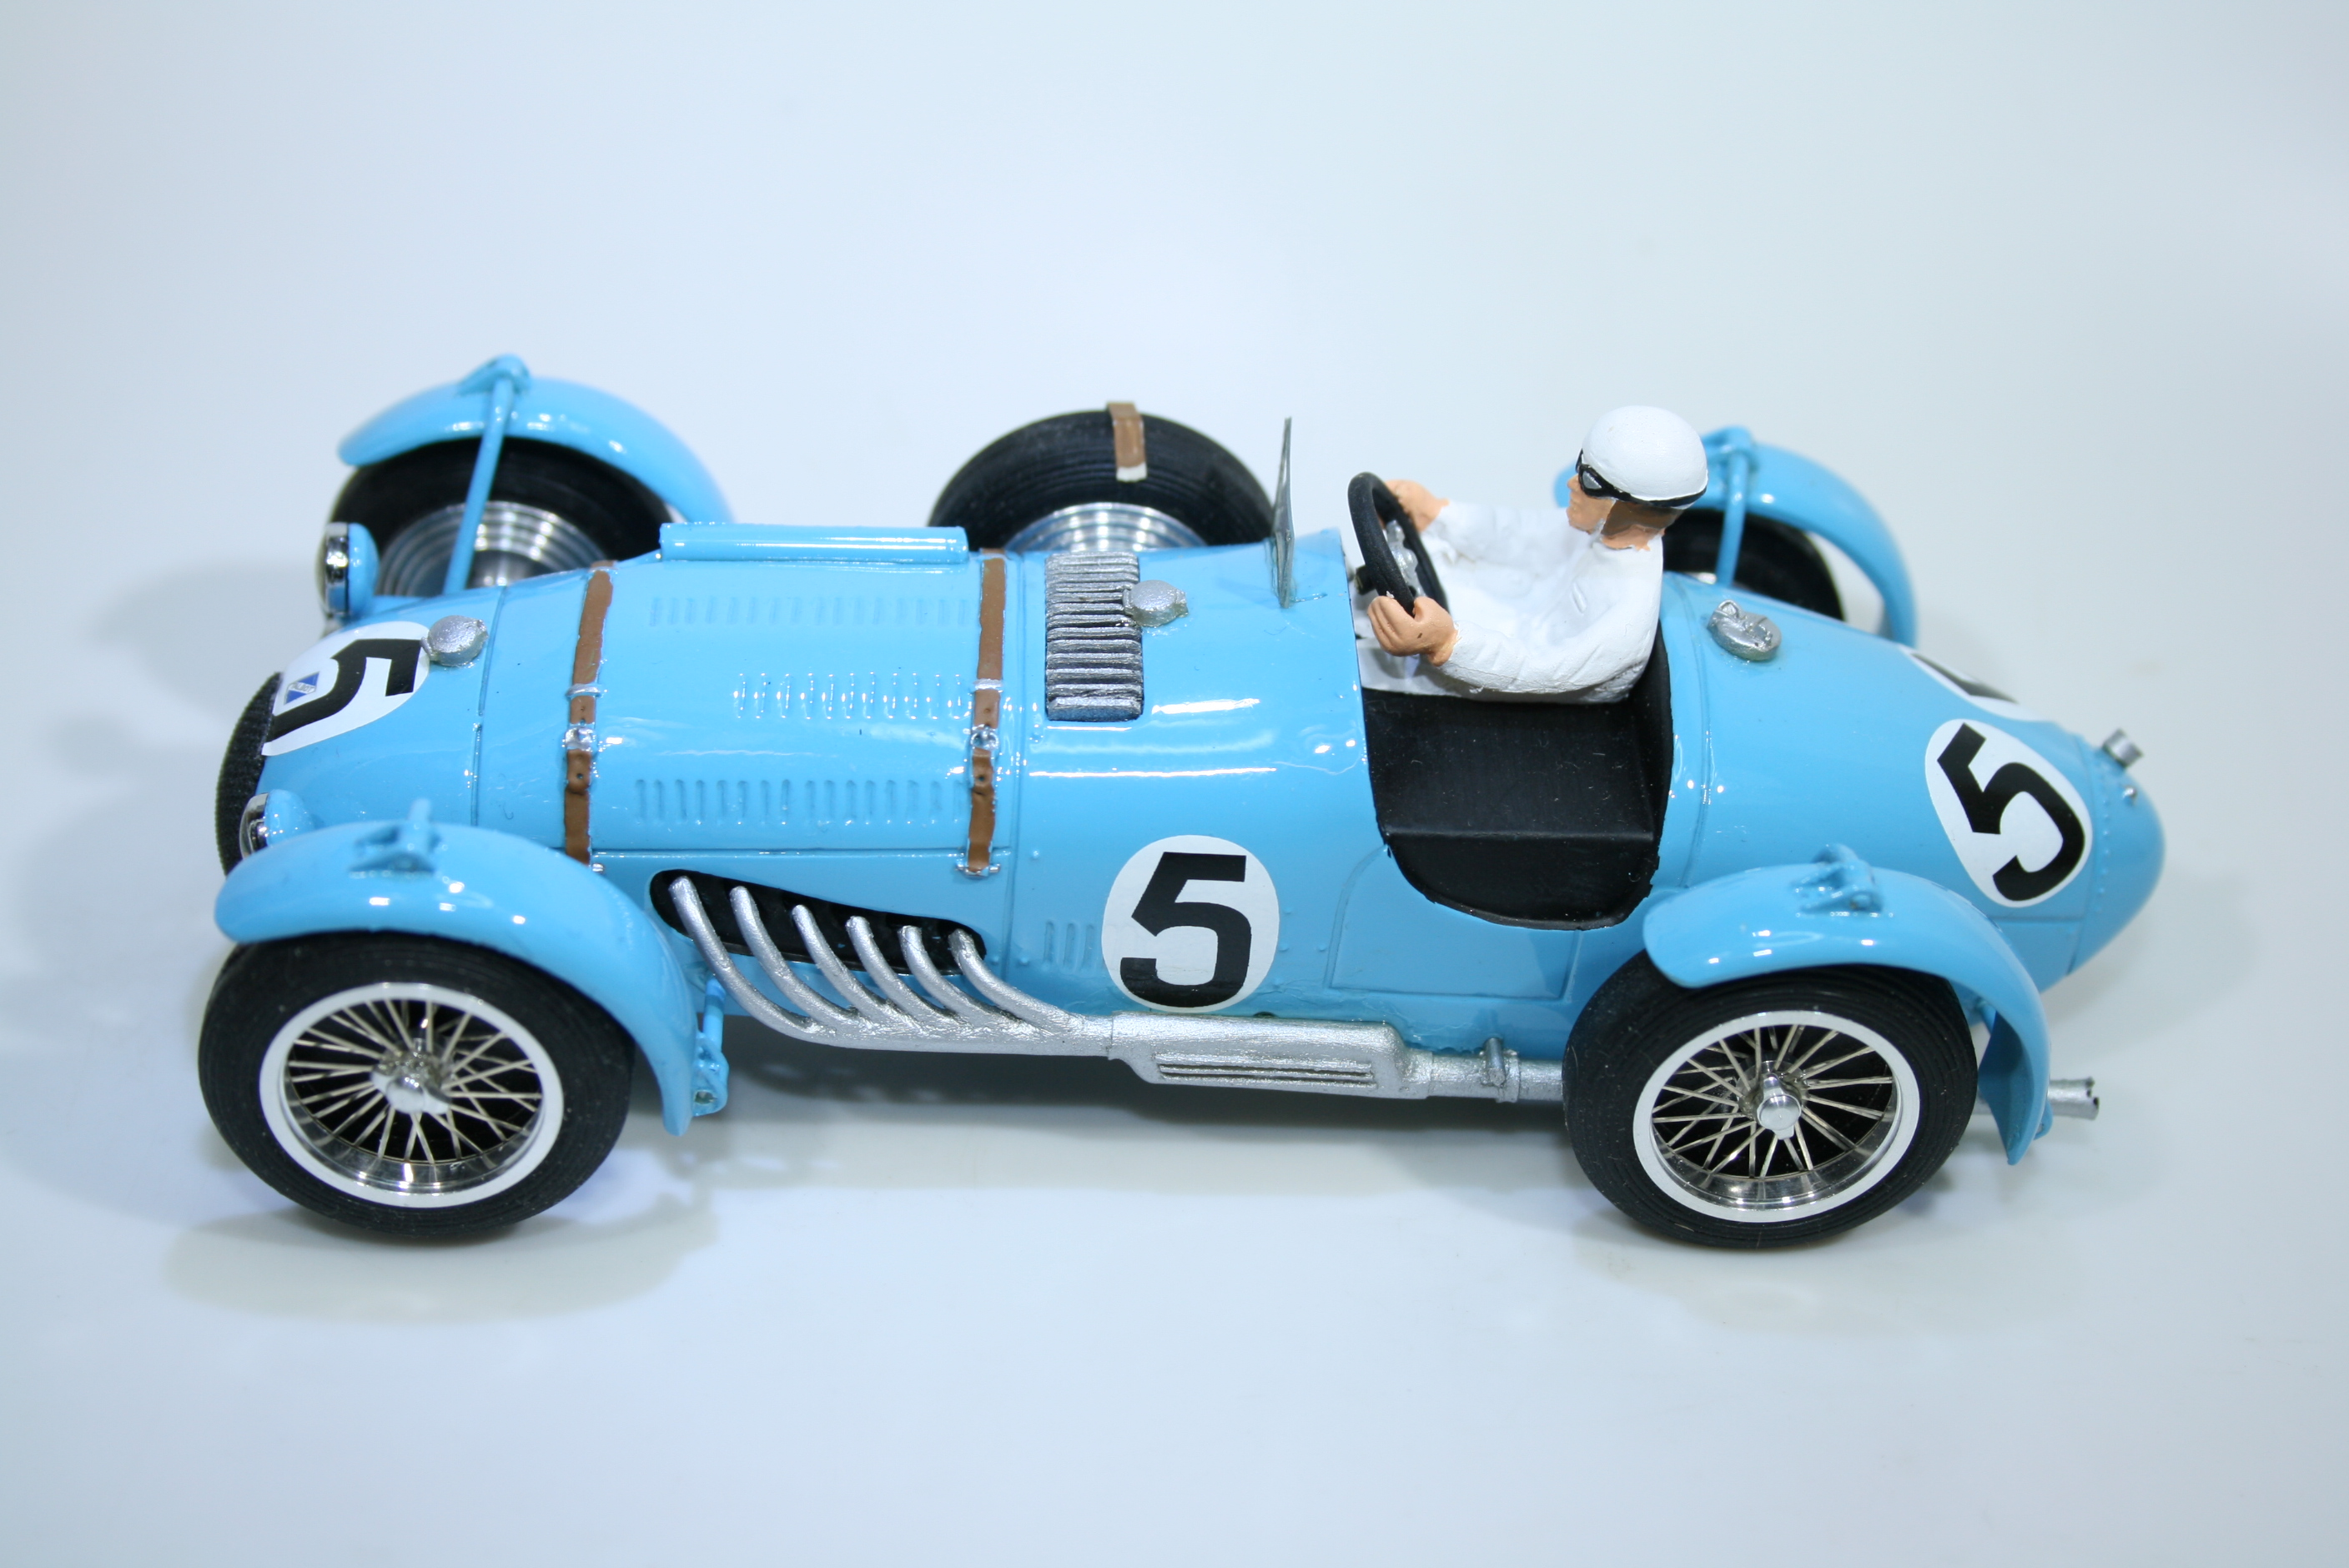 1545 Talbot Lago T26GS 1950 L Rosier MMK SF10 Boxed